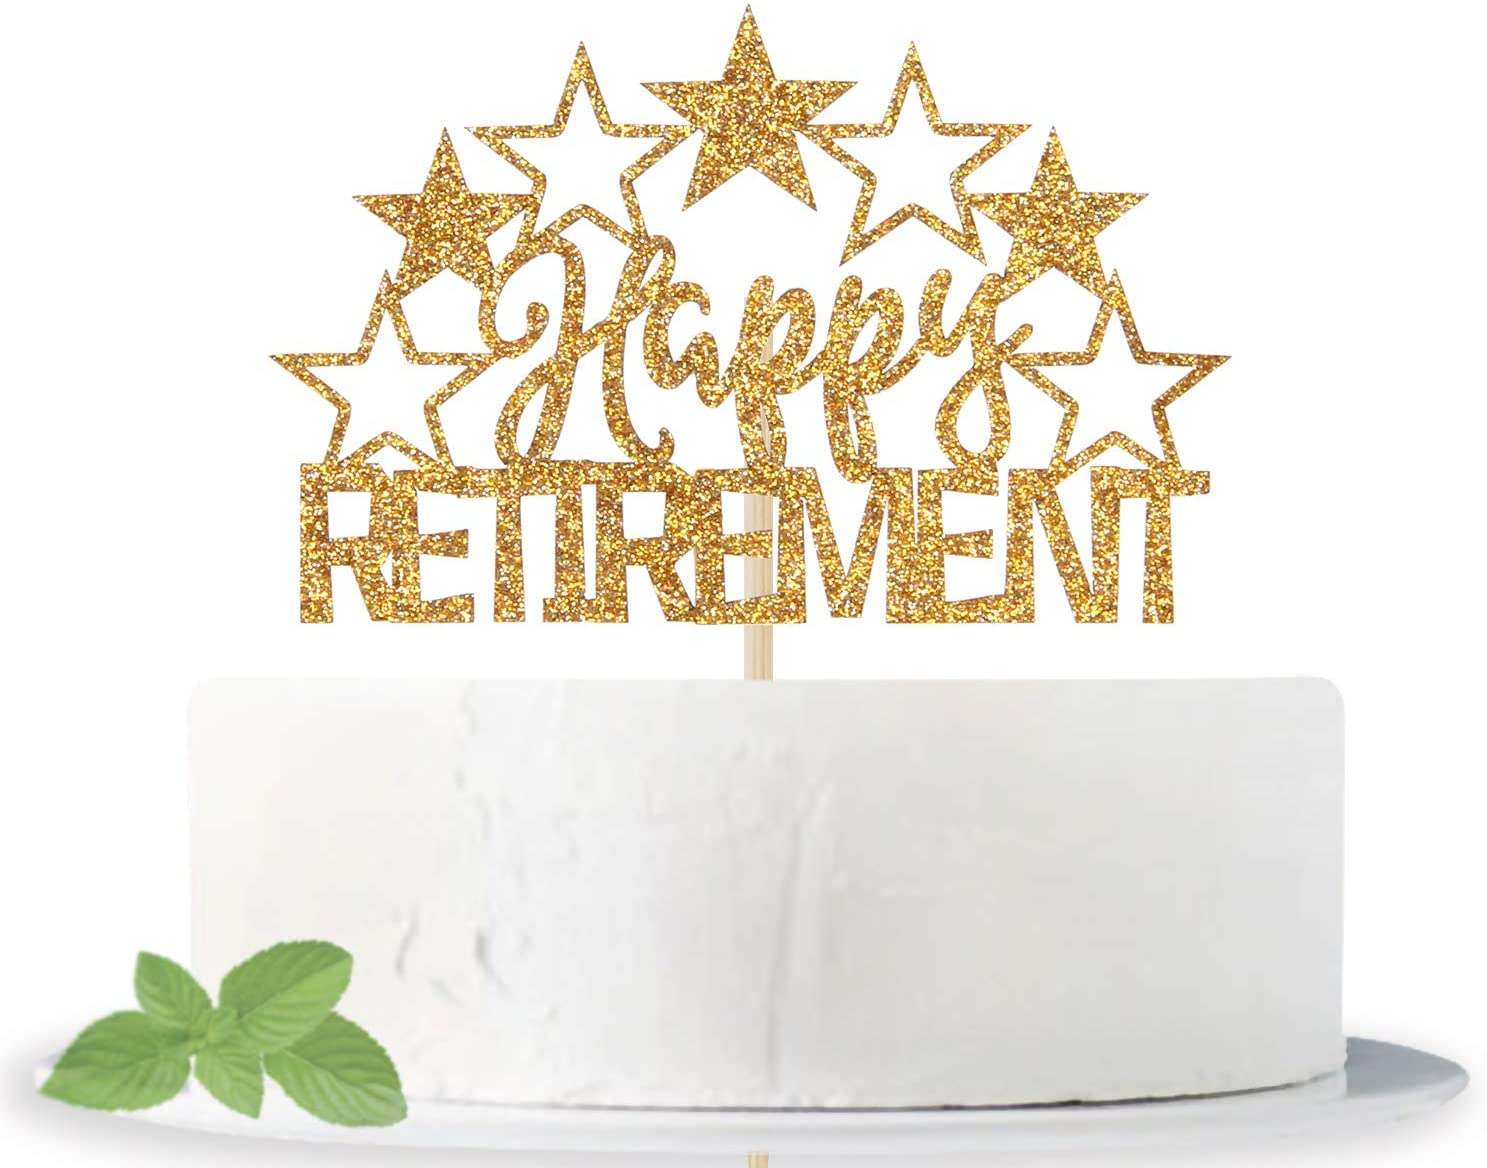 Gold Glitter Happy Retirement Cake Topper -Officially Retired - Retirement Party Decoration Supplies